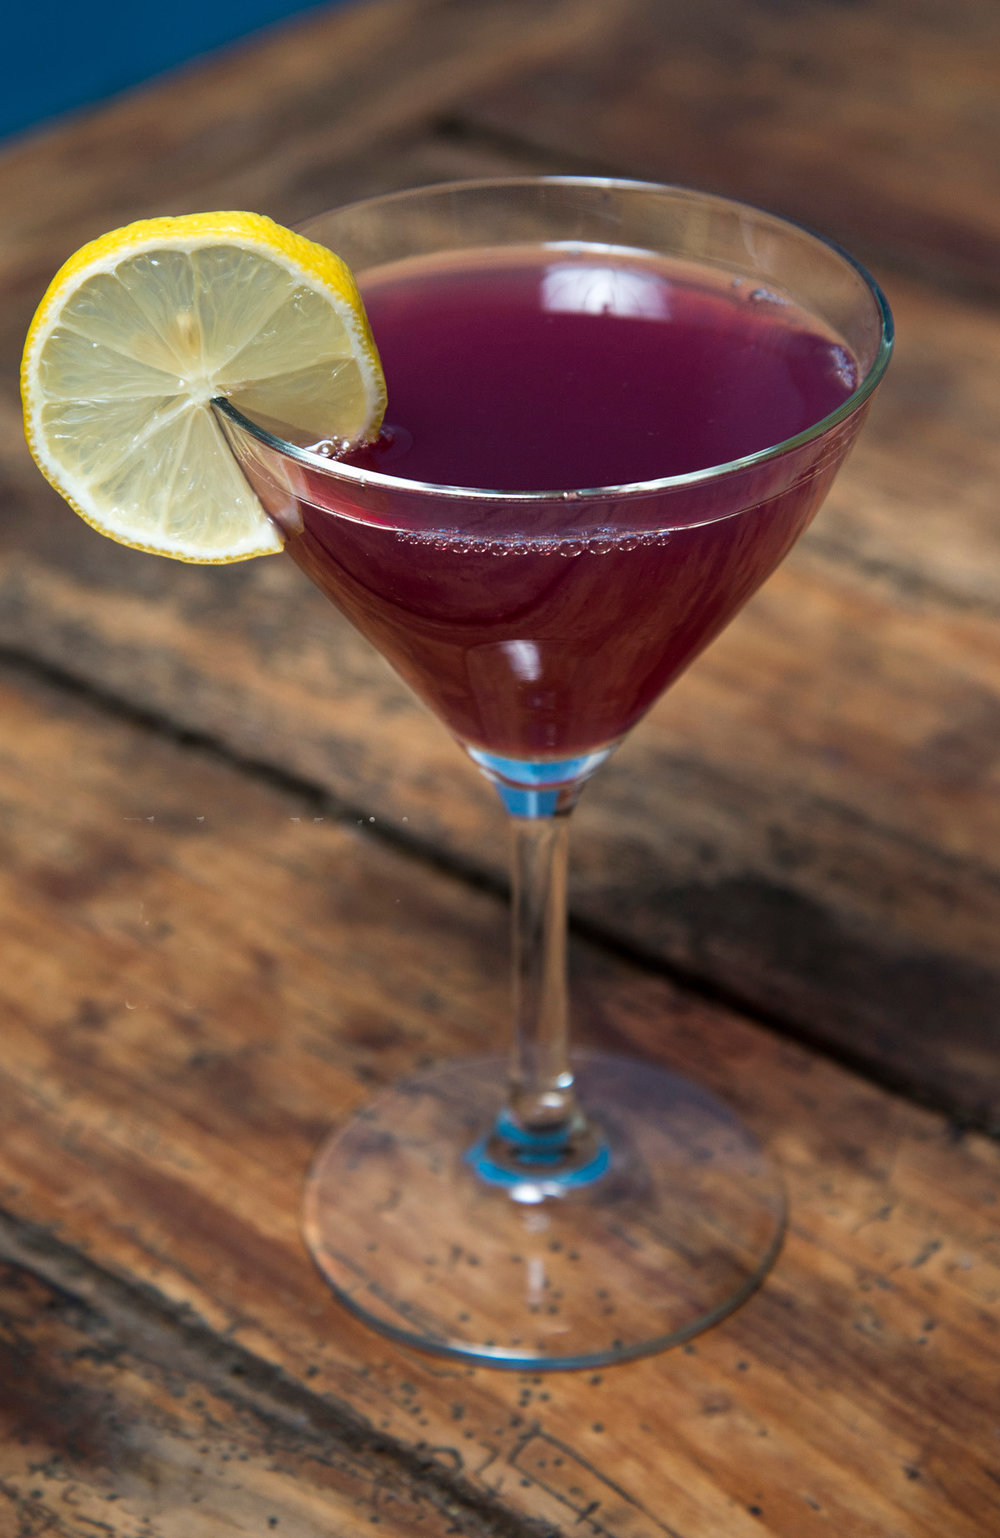 Blueberry Martini 1.0 oz Blueberry Finn 3.0 oz vodka 0.5 oz vermouth (Recipe by our very own Massimiliano Matté)